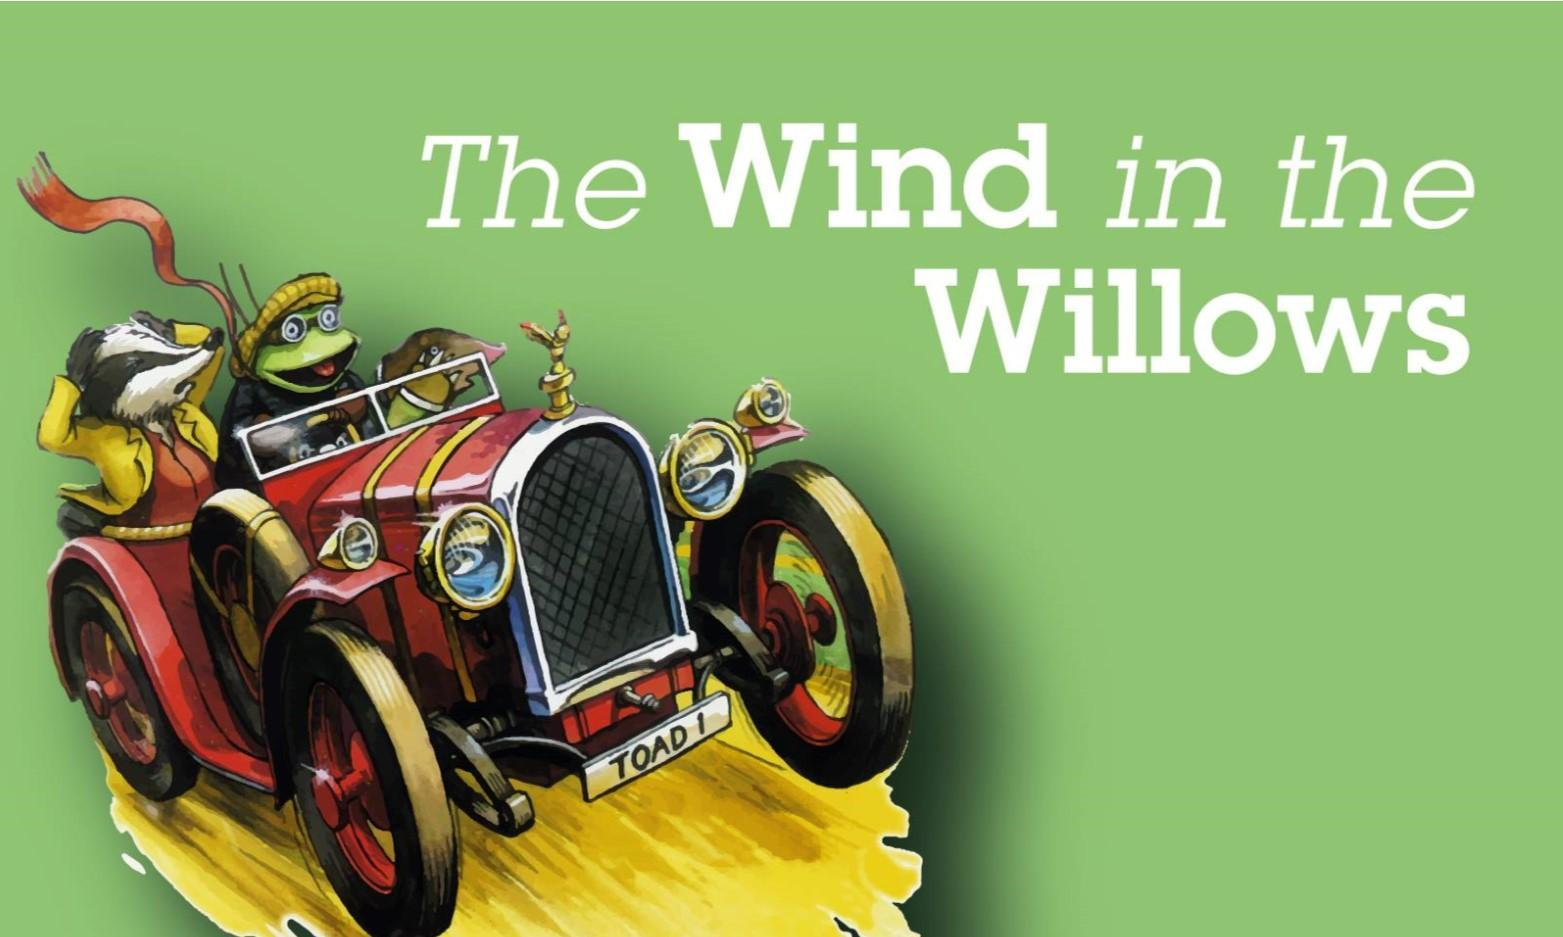 The Wind in the Willows at Pembroke Castle